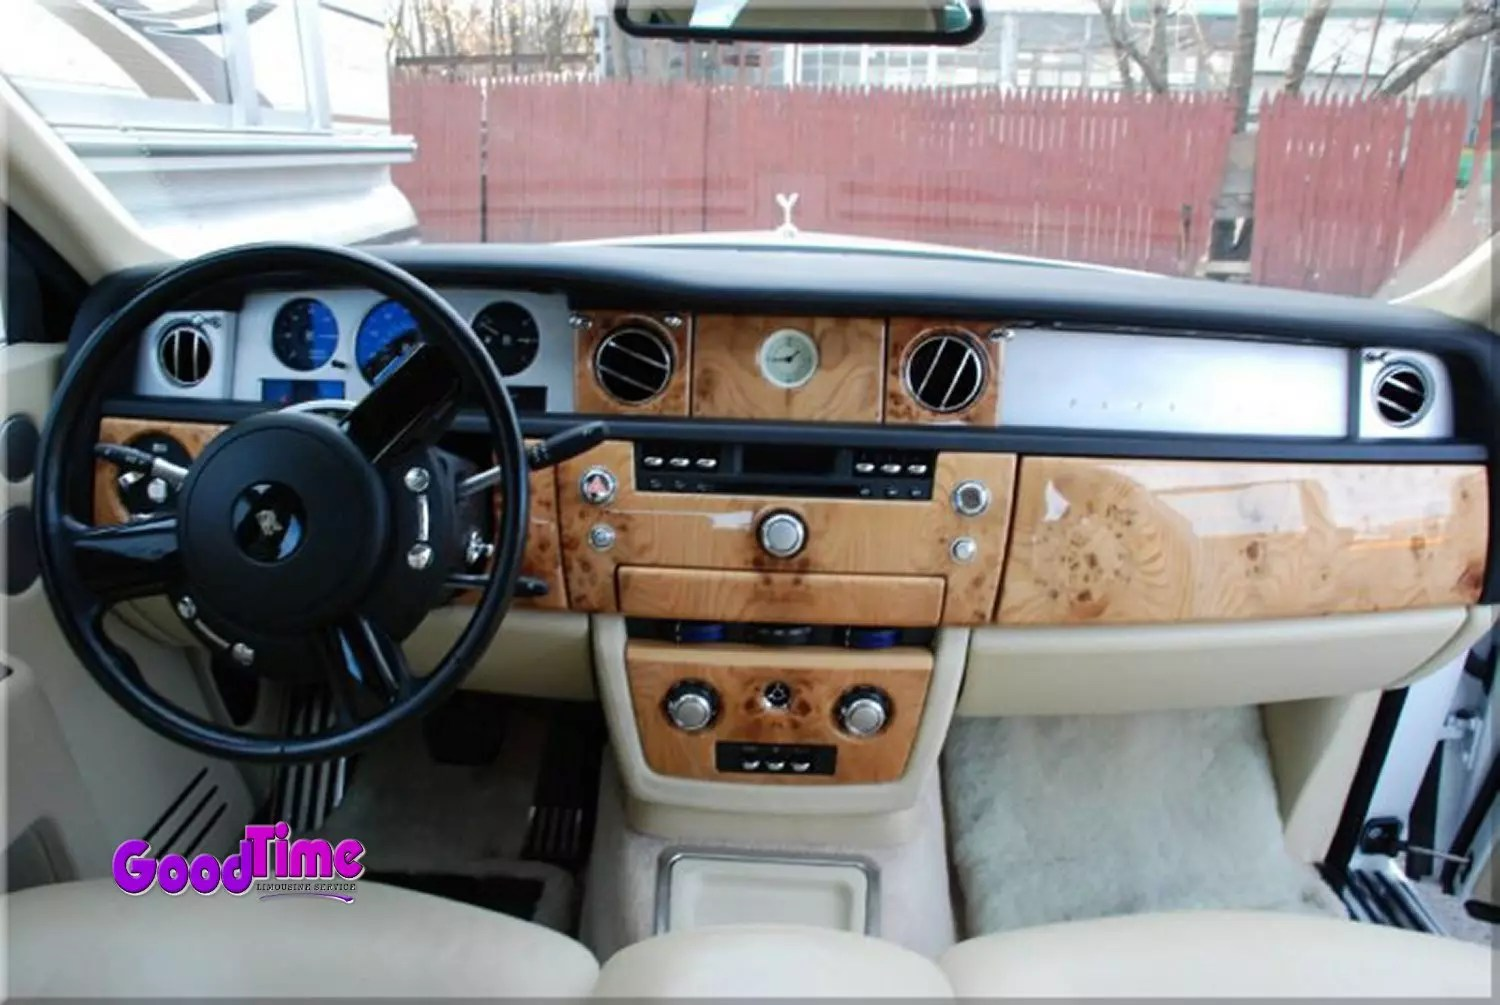 Rolls Royce Phantom White Limo Int 6 1 LIMO RENTAL FLEET